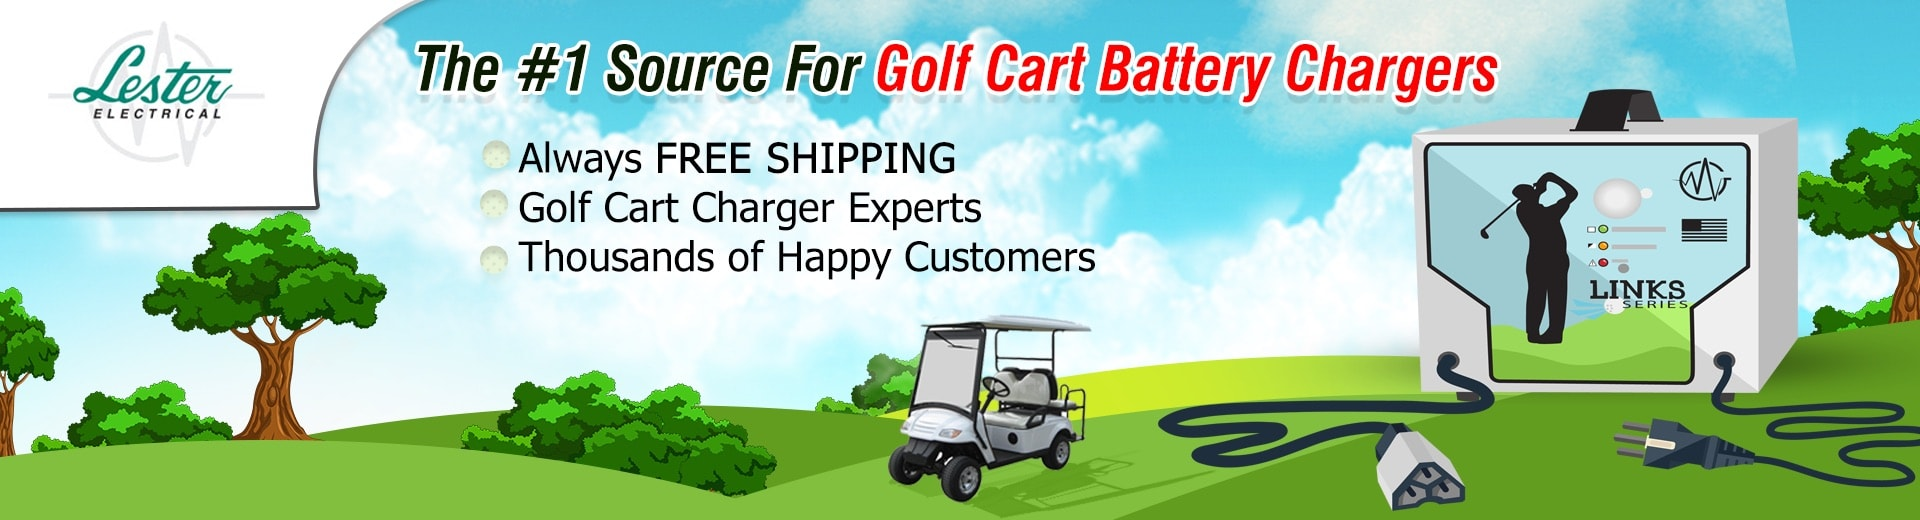 Golf Cart Accessories & Golf Cart Parts For All Golf Carts | Free ...